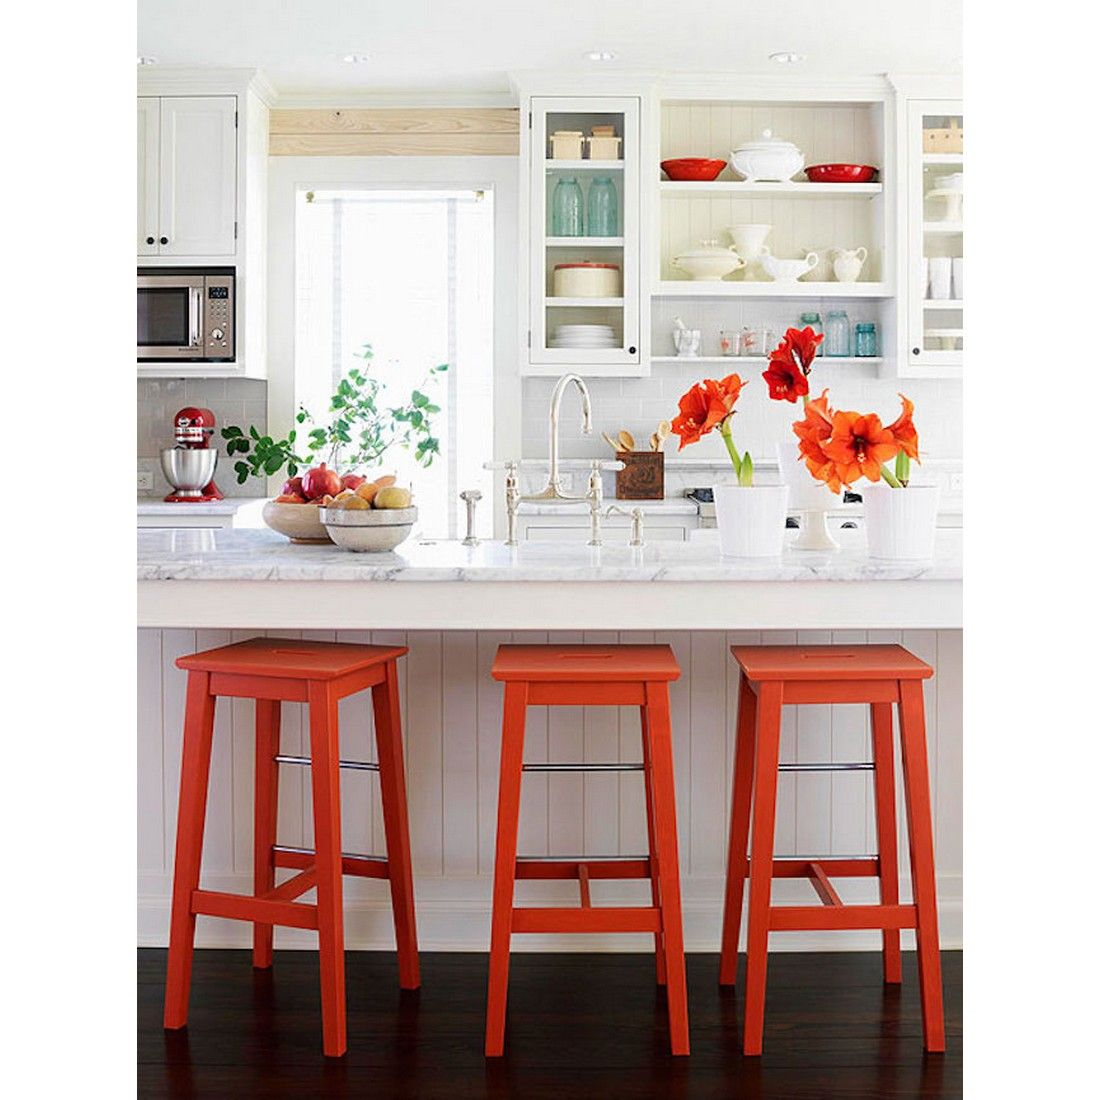 Bright Red Bar Stools For White Kitchen Accents Yay Or Nay Rumahkukitchen Country Kitchen Decor Kitchen Decor Country Kitchen